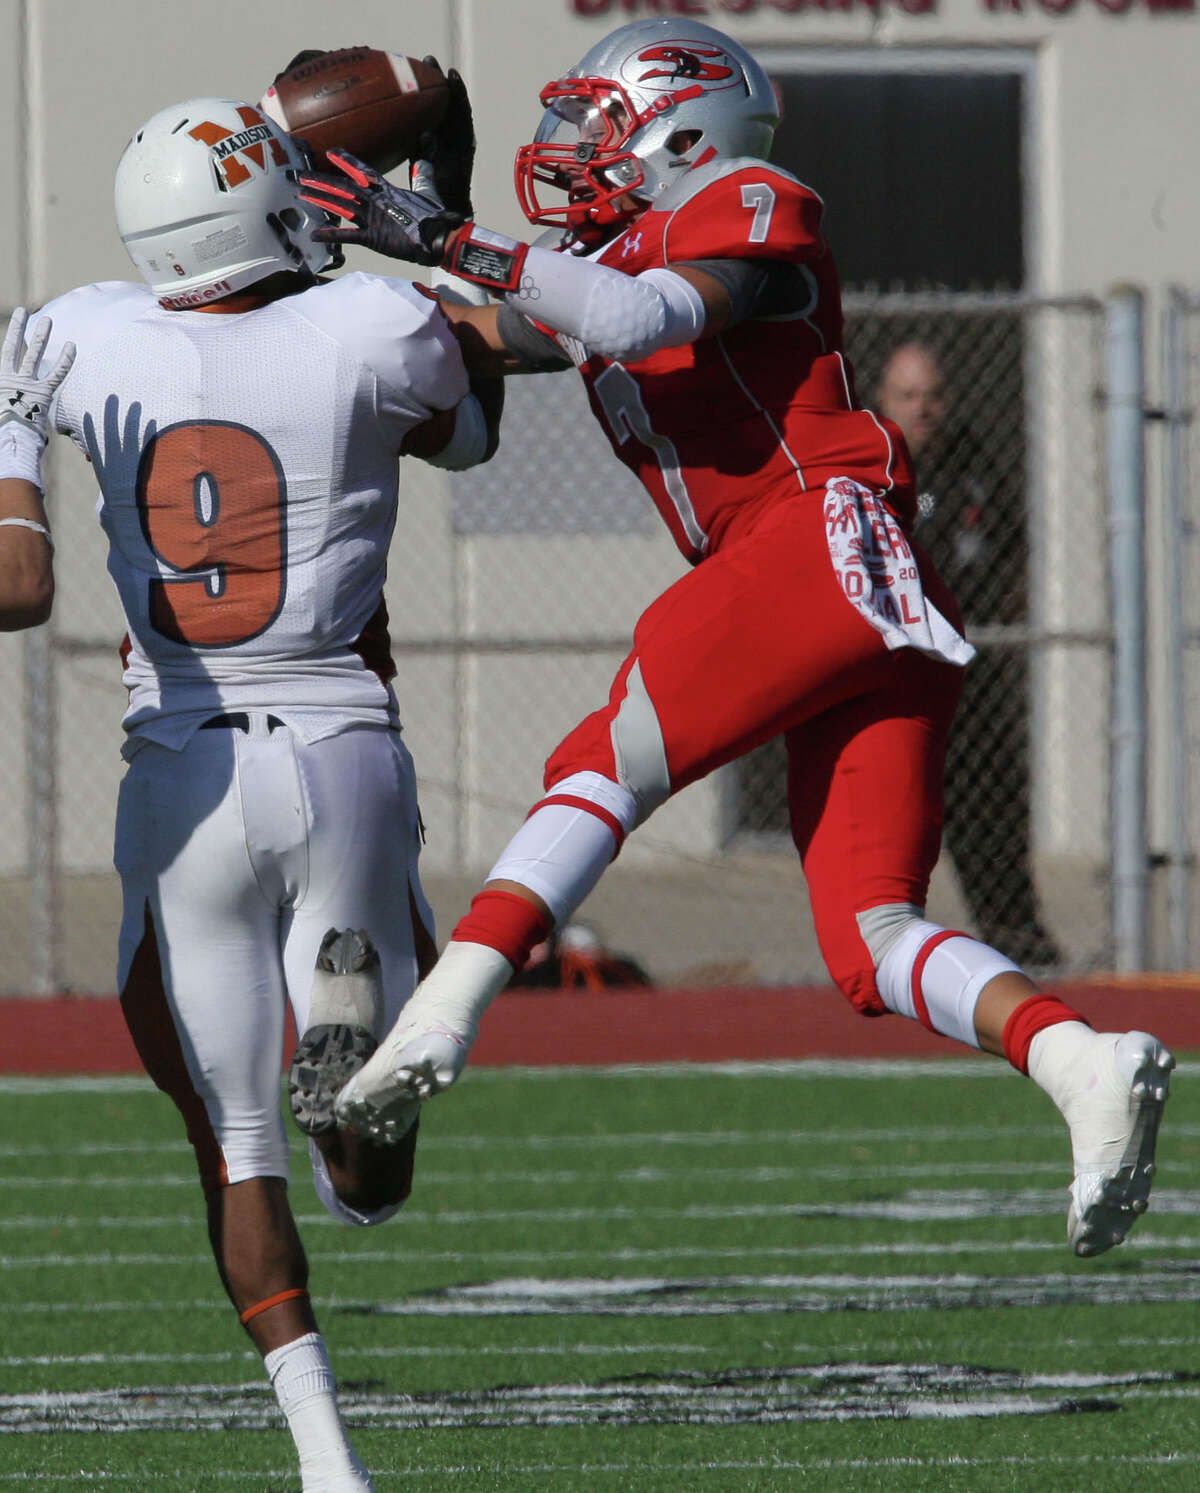 Madison's Devon Thomas snags a pass as Mission Sharyland's Sean Landez defends on the play in the fourth quarter play during a regional playoffs game at Buccaneer Stadium in Corpus Christi on Friday, Nov. 29, 2013.